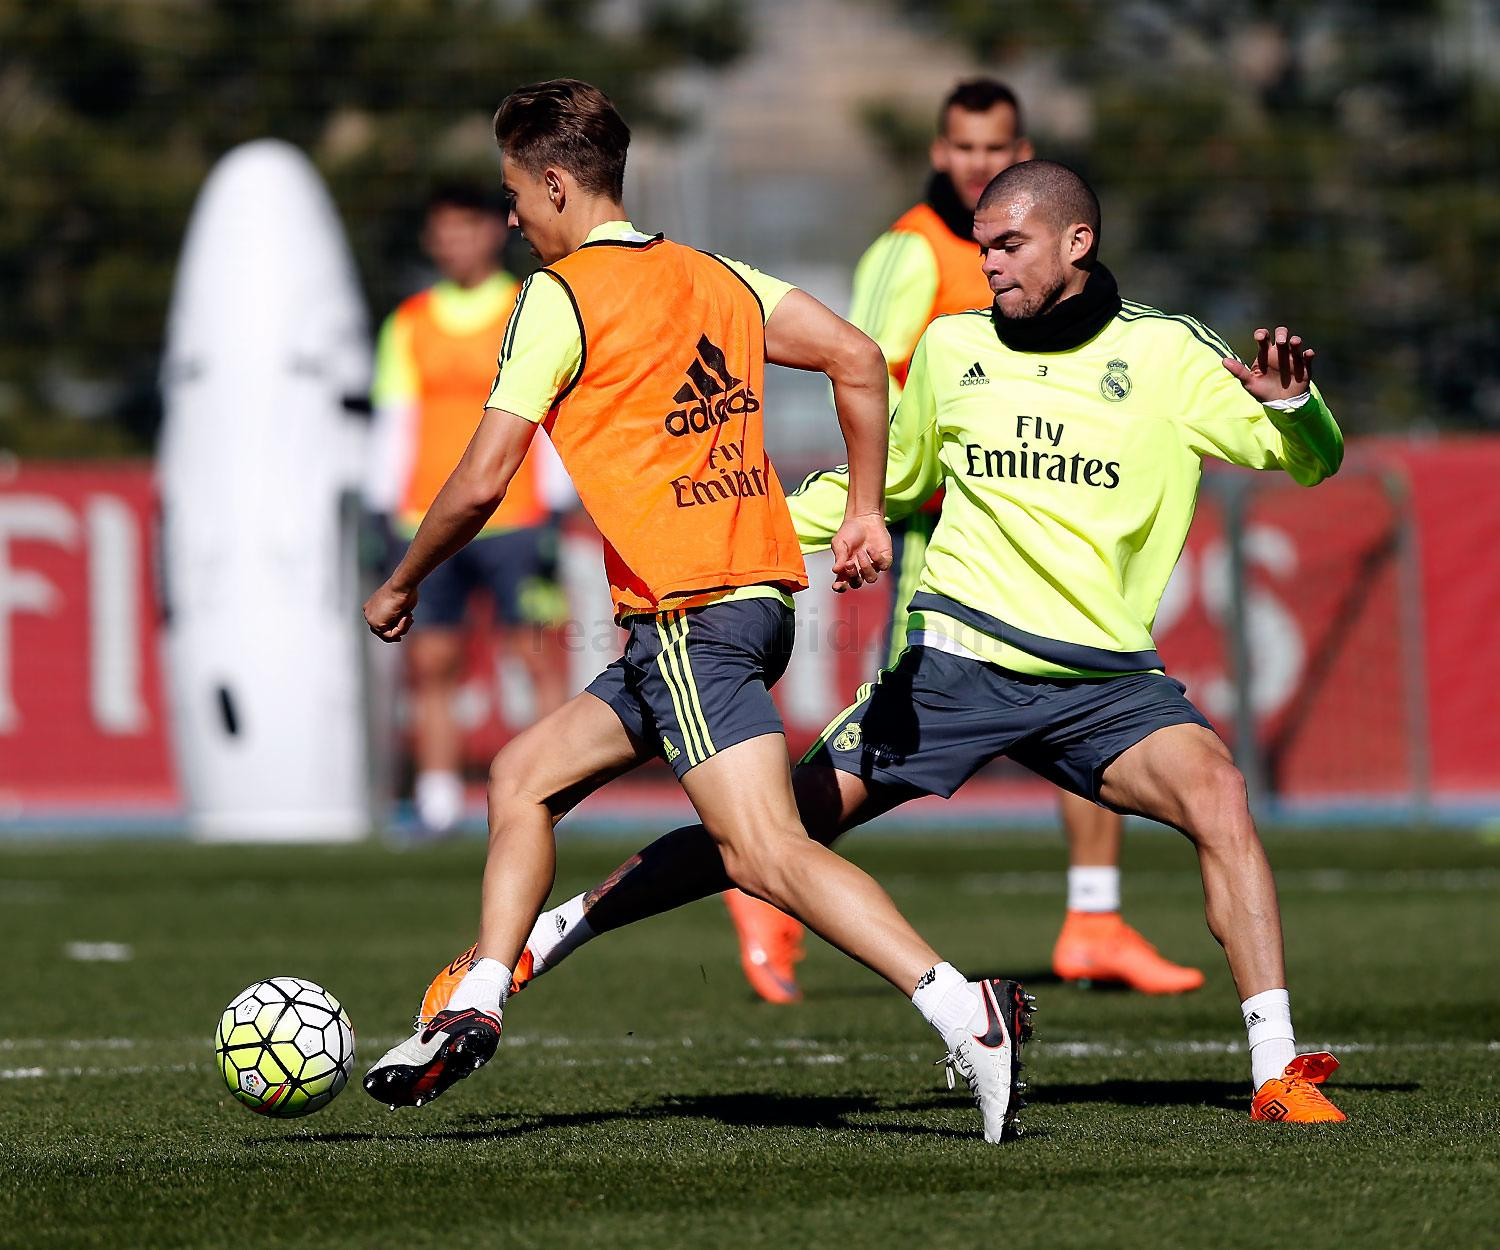 Real Madrid - Entrenamiento del Real Madrid - 01-03-2016